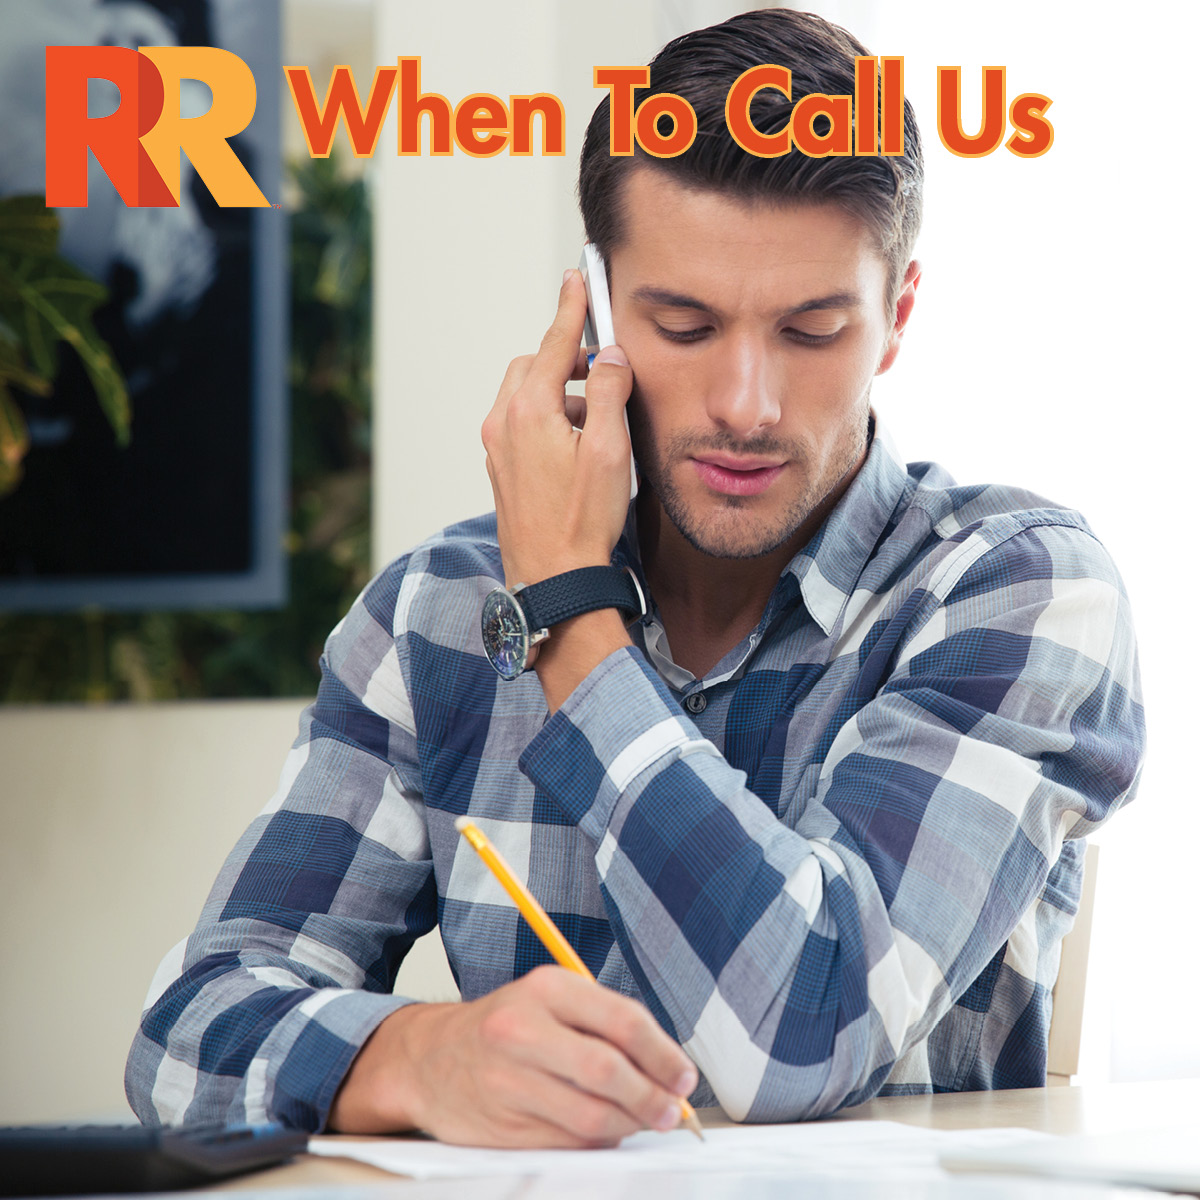 When to Call RRPS About A COVID-19 Related Incident